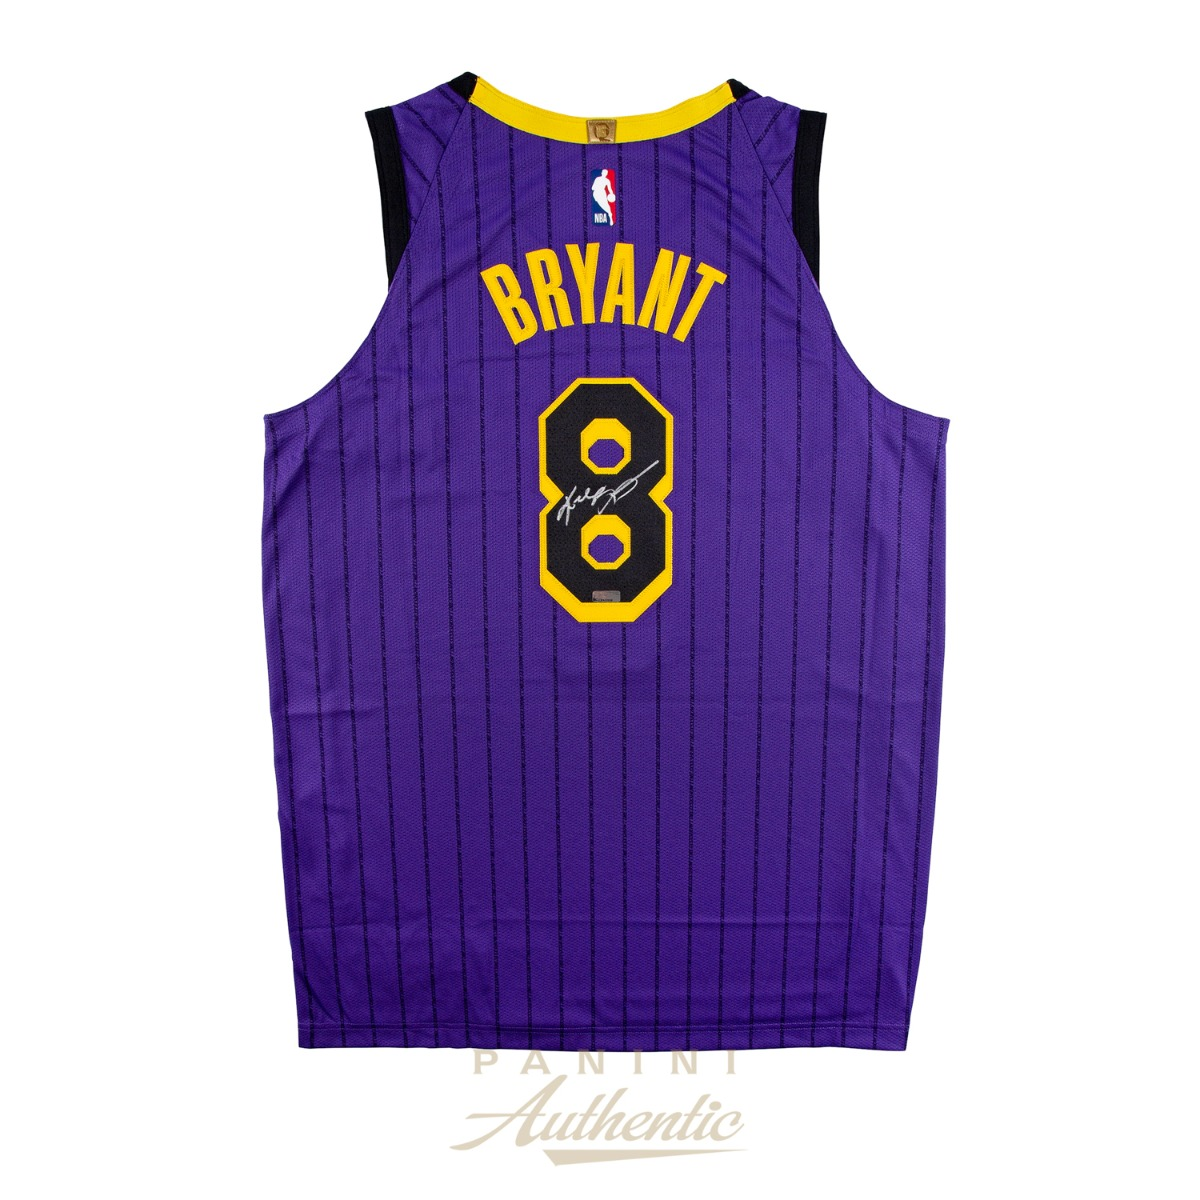 on sale 401c7 2c02d Kobe Bryant Autographed #8 LA Lakers 2019 Nike City Edition ...